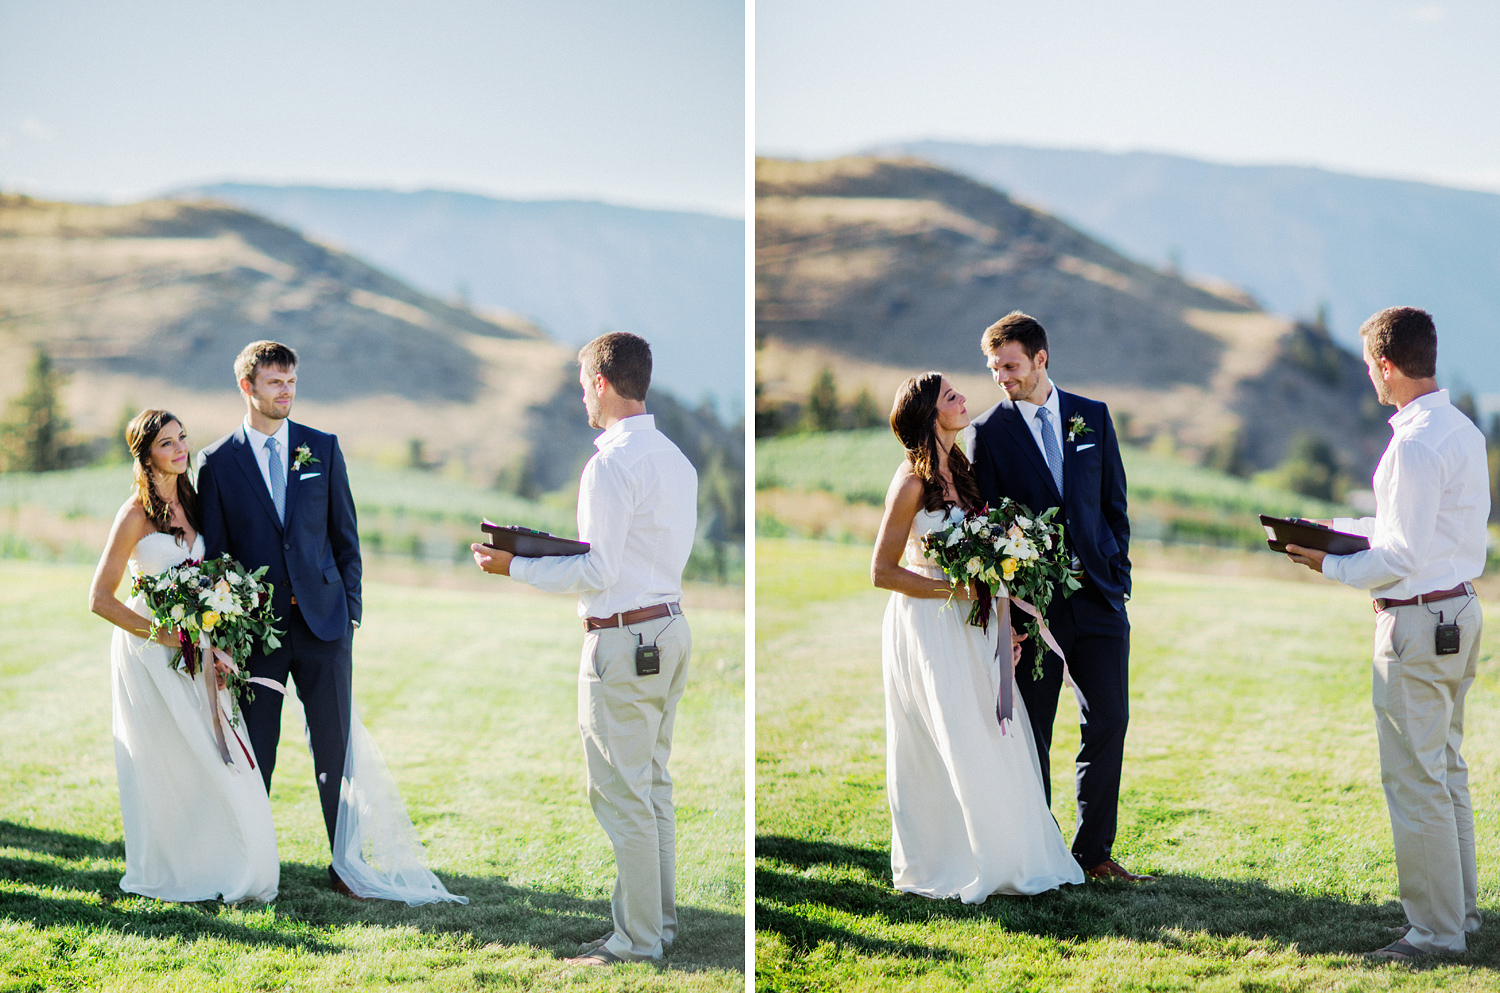 ryan-flynn-seattle-film-photographer-lake-chelan-wedding-0042.JPG